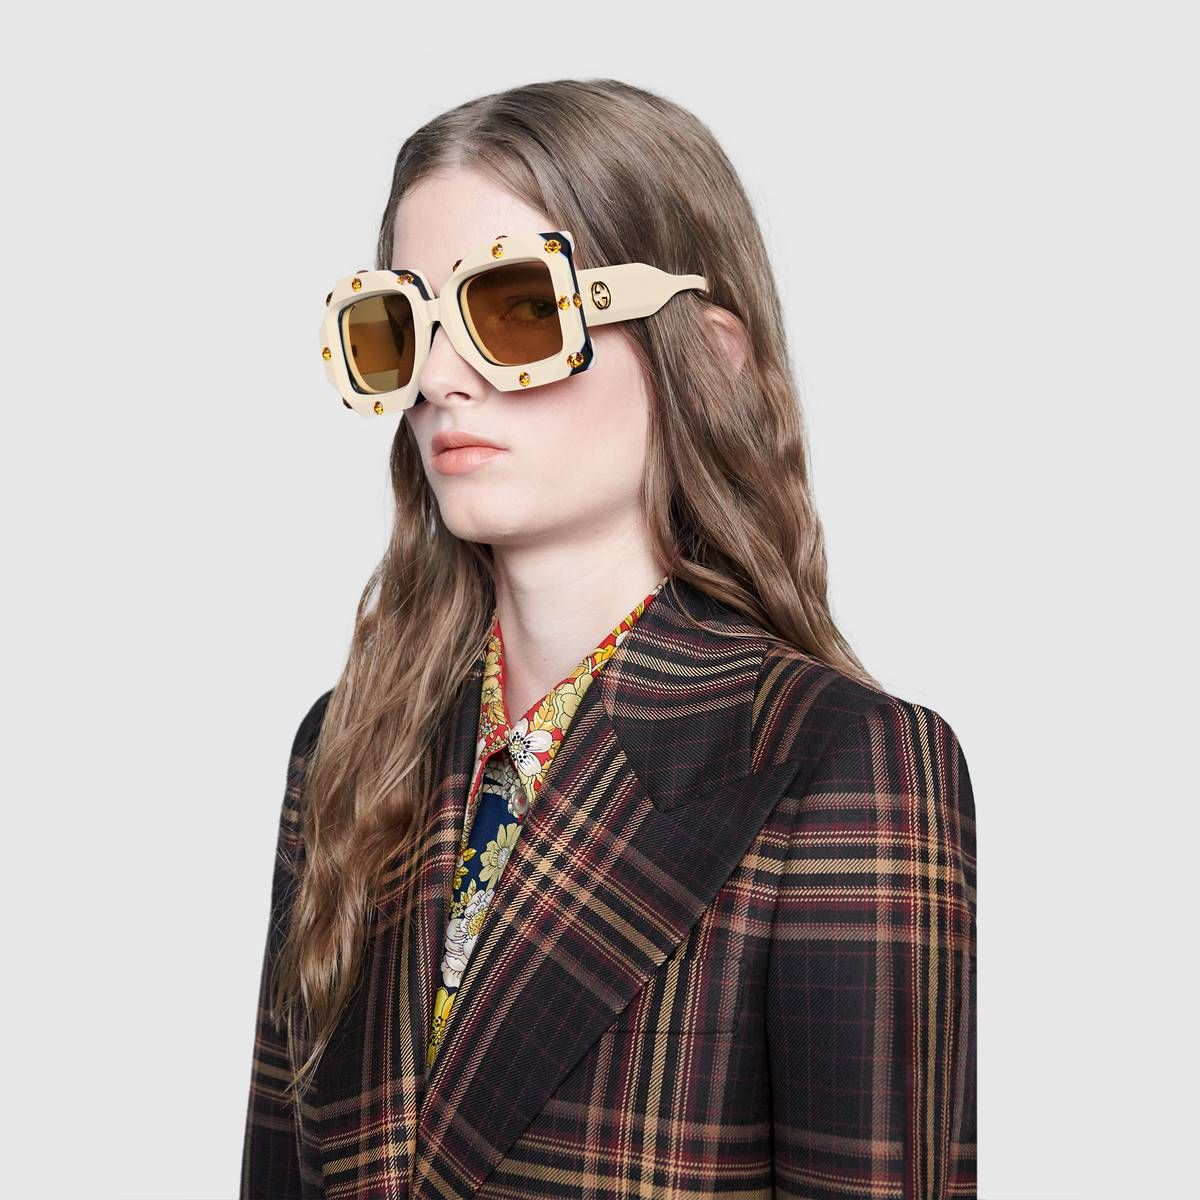 a7b243da73 Shop the Oversize square-frame sunglasses with crystals by Gucci. These  oversize Hollywood Forever sunglasses are crafted from triple layered